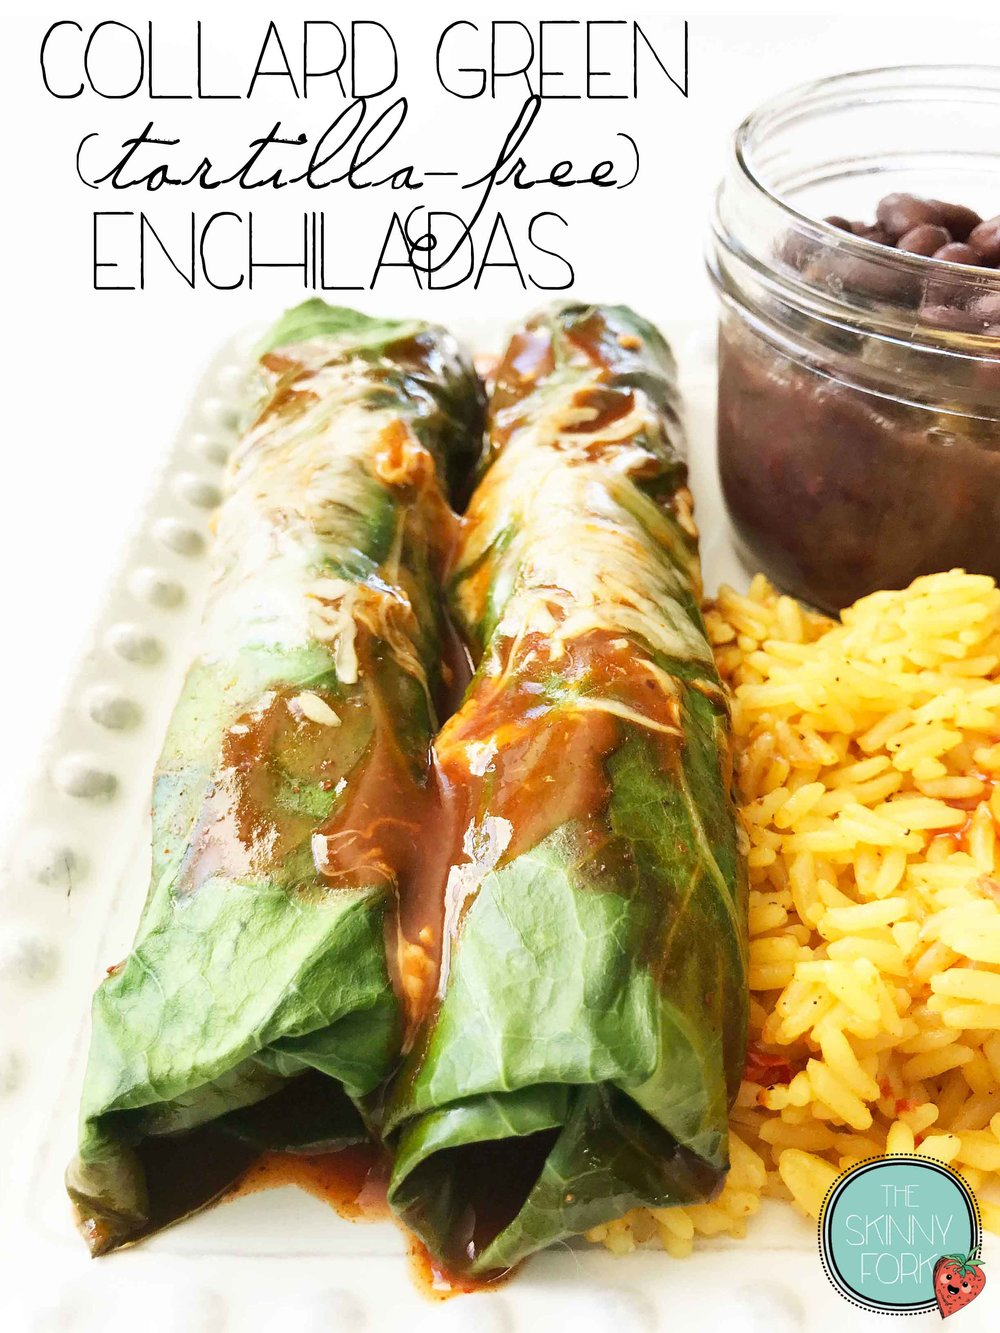 collard-enchiladas-pin.jpg